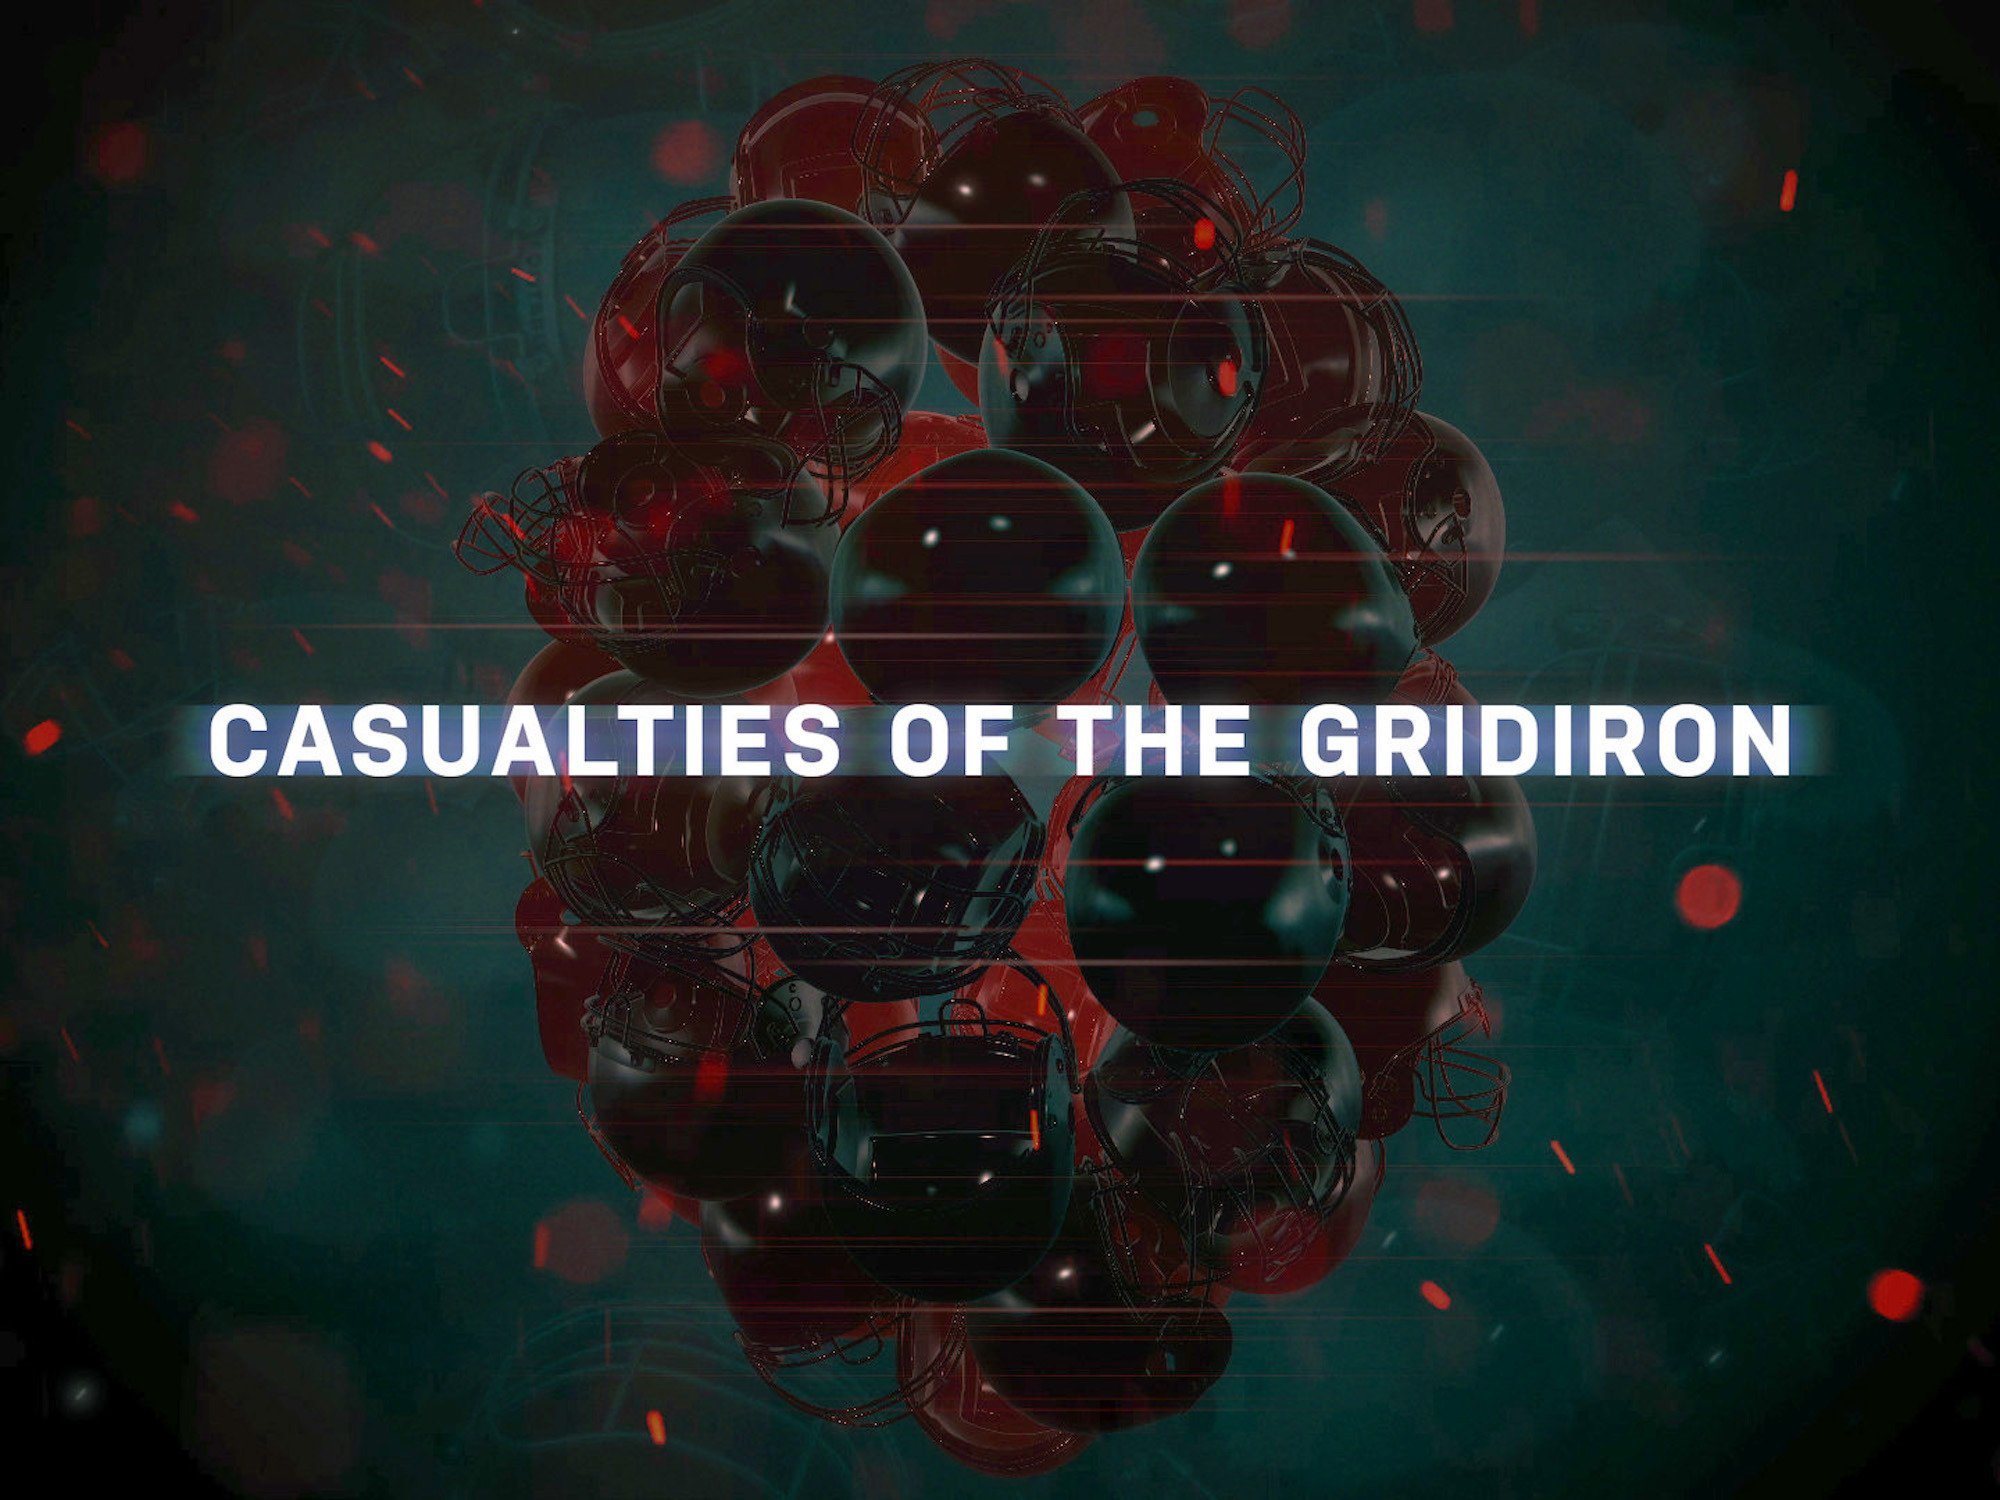 Clip: Casualties of the Gridiron - Season 2